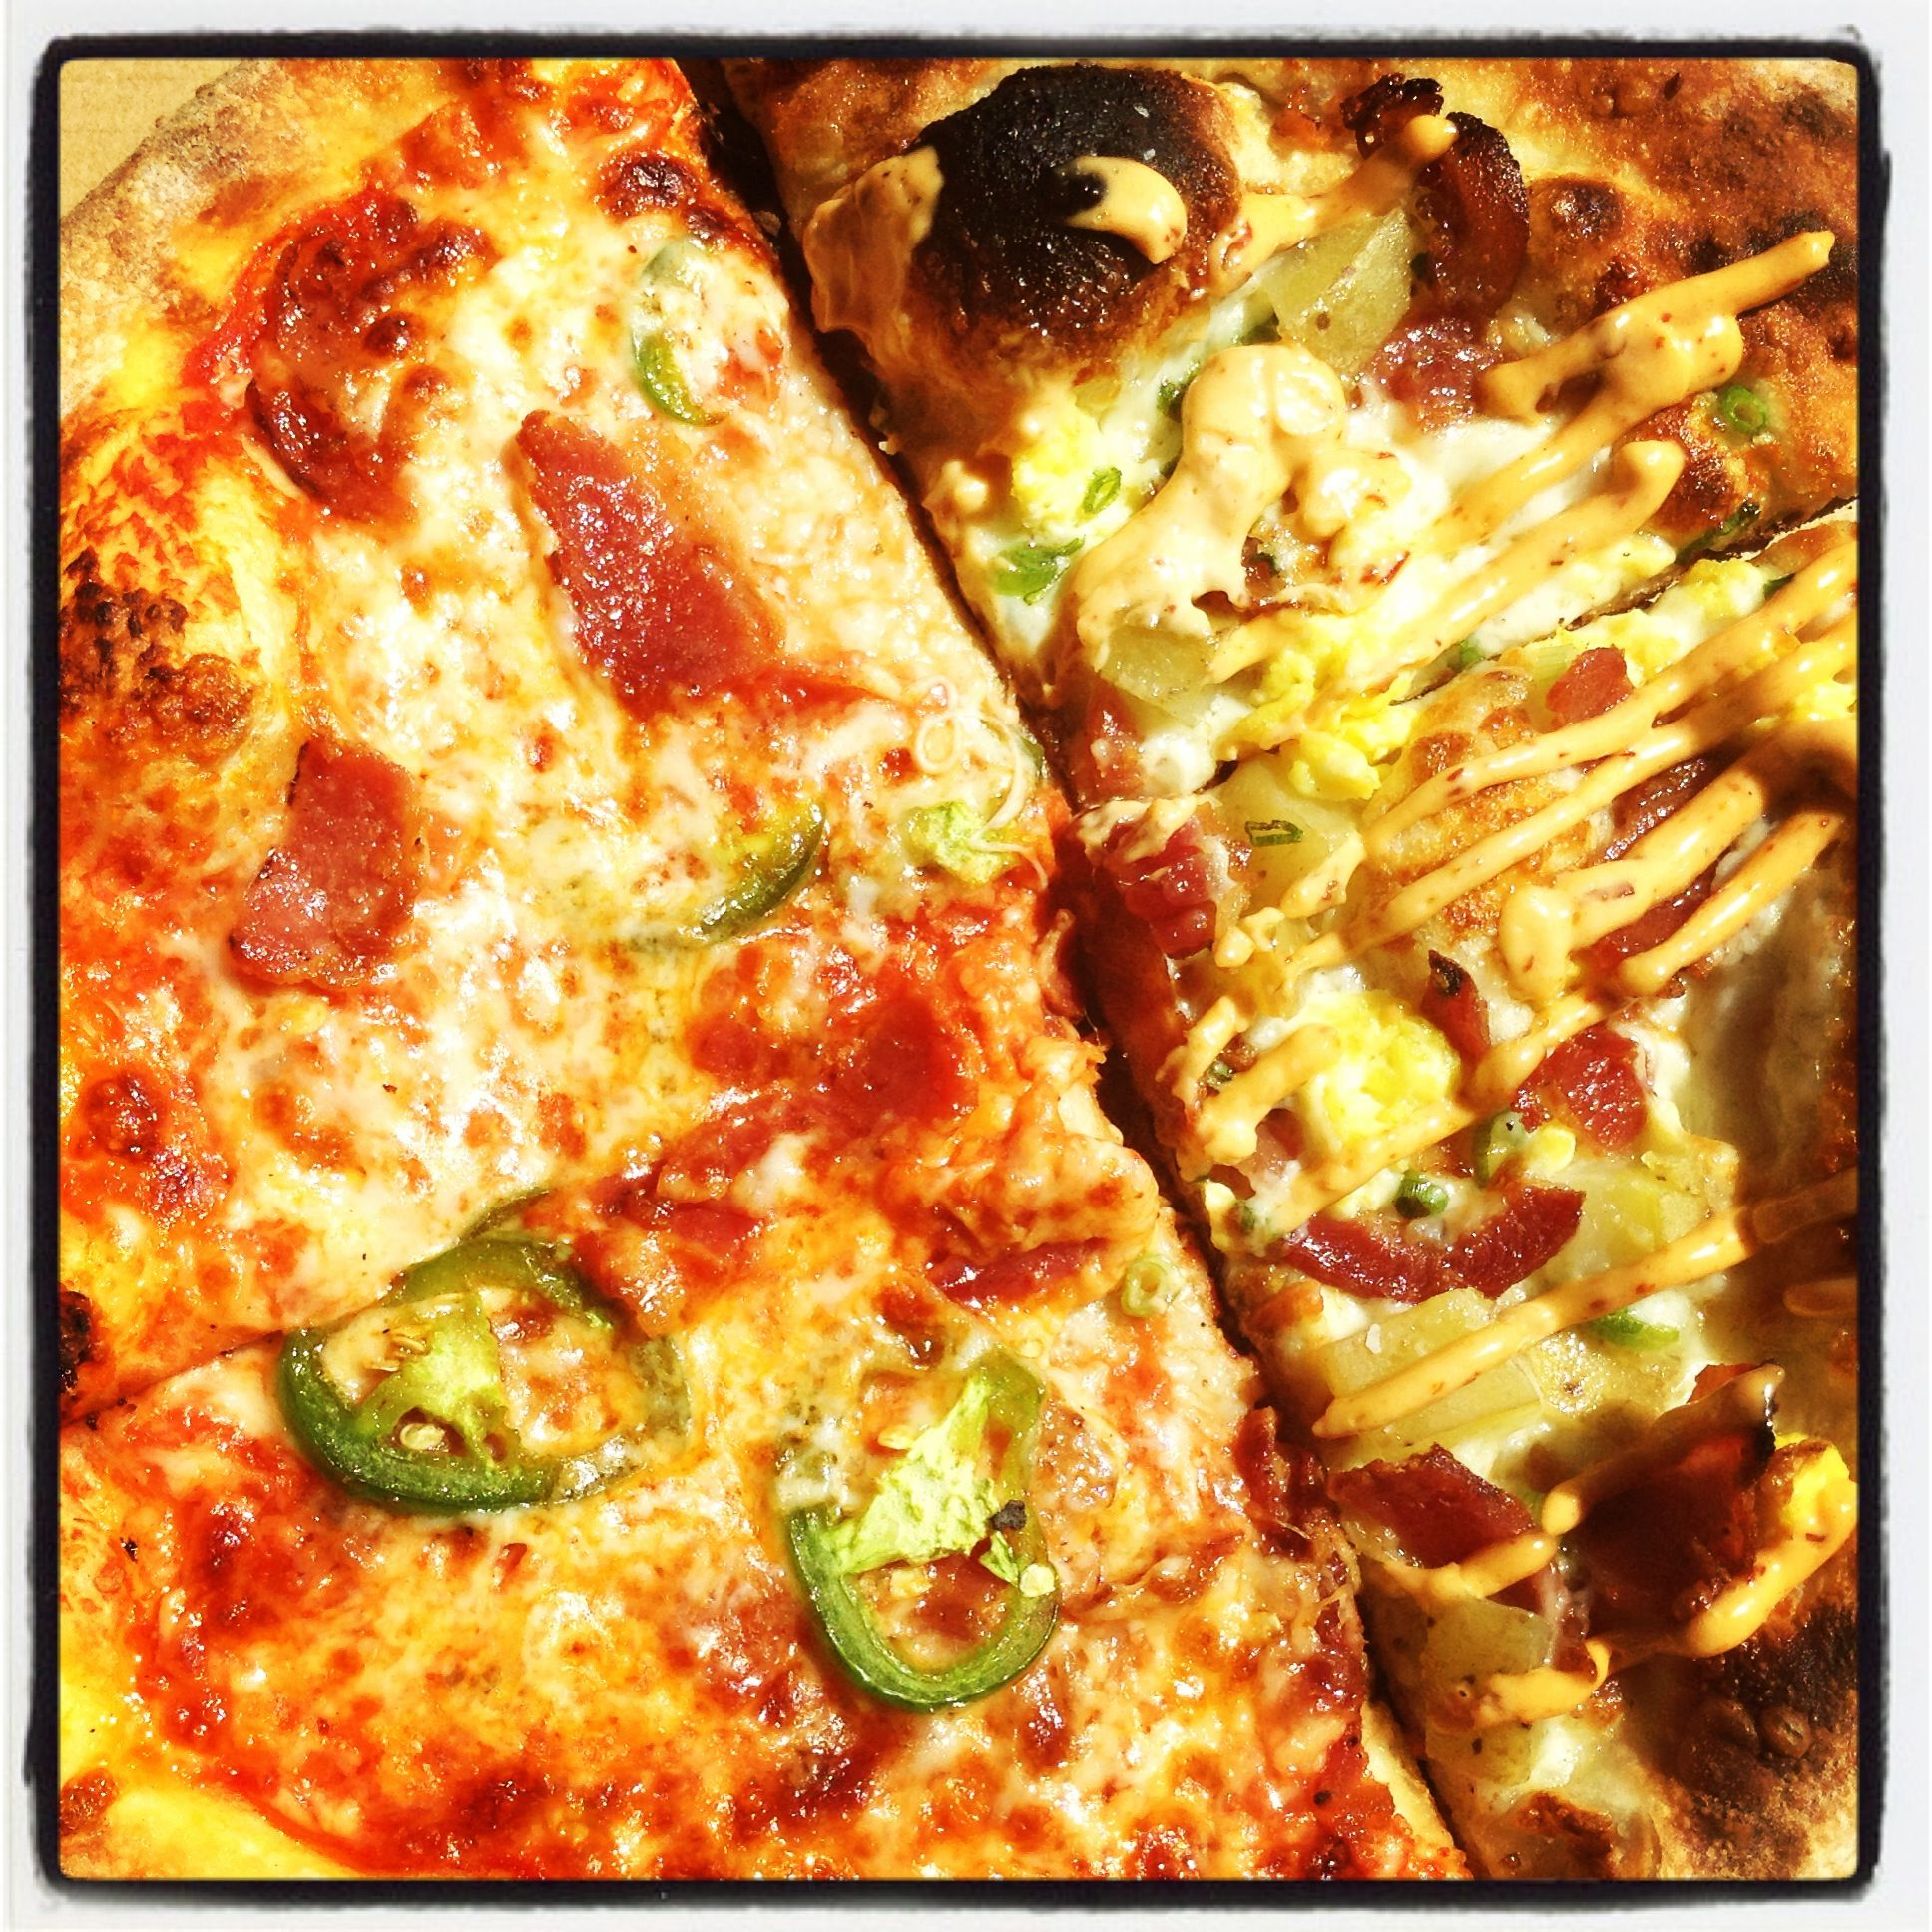 Olivewood pizza at peters landing farmers market